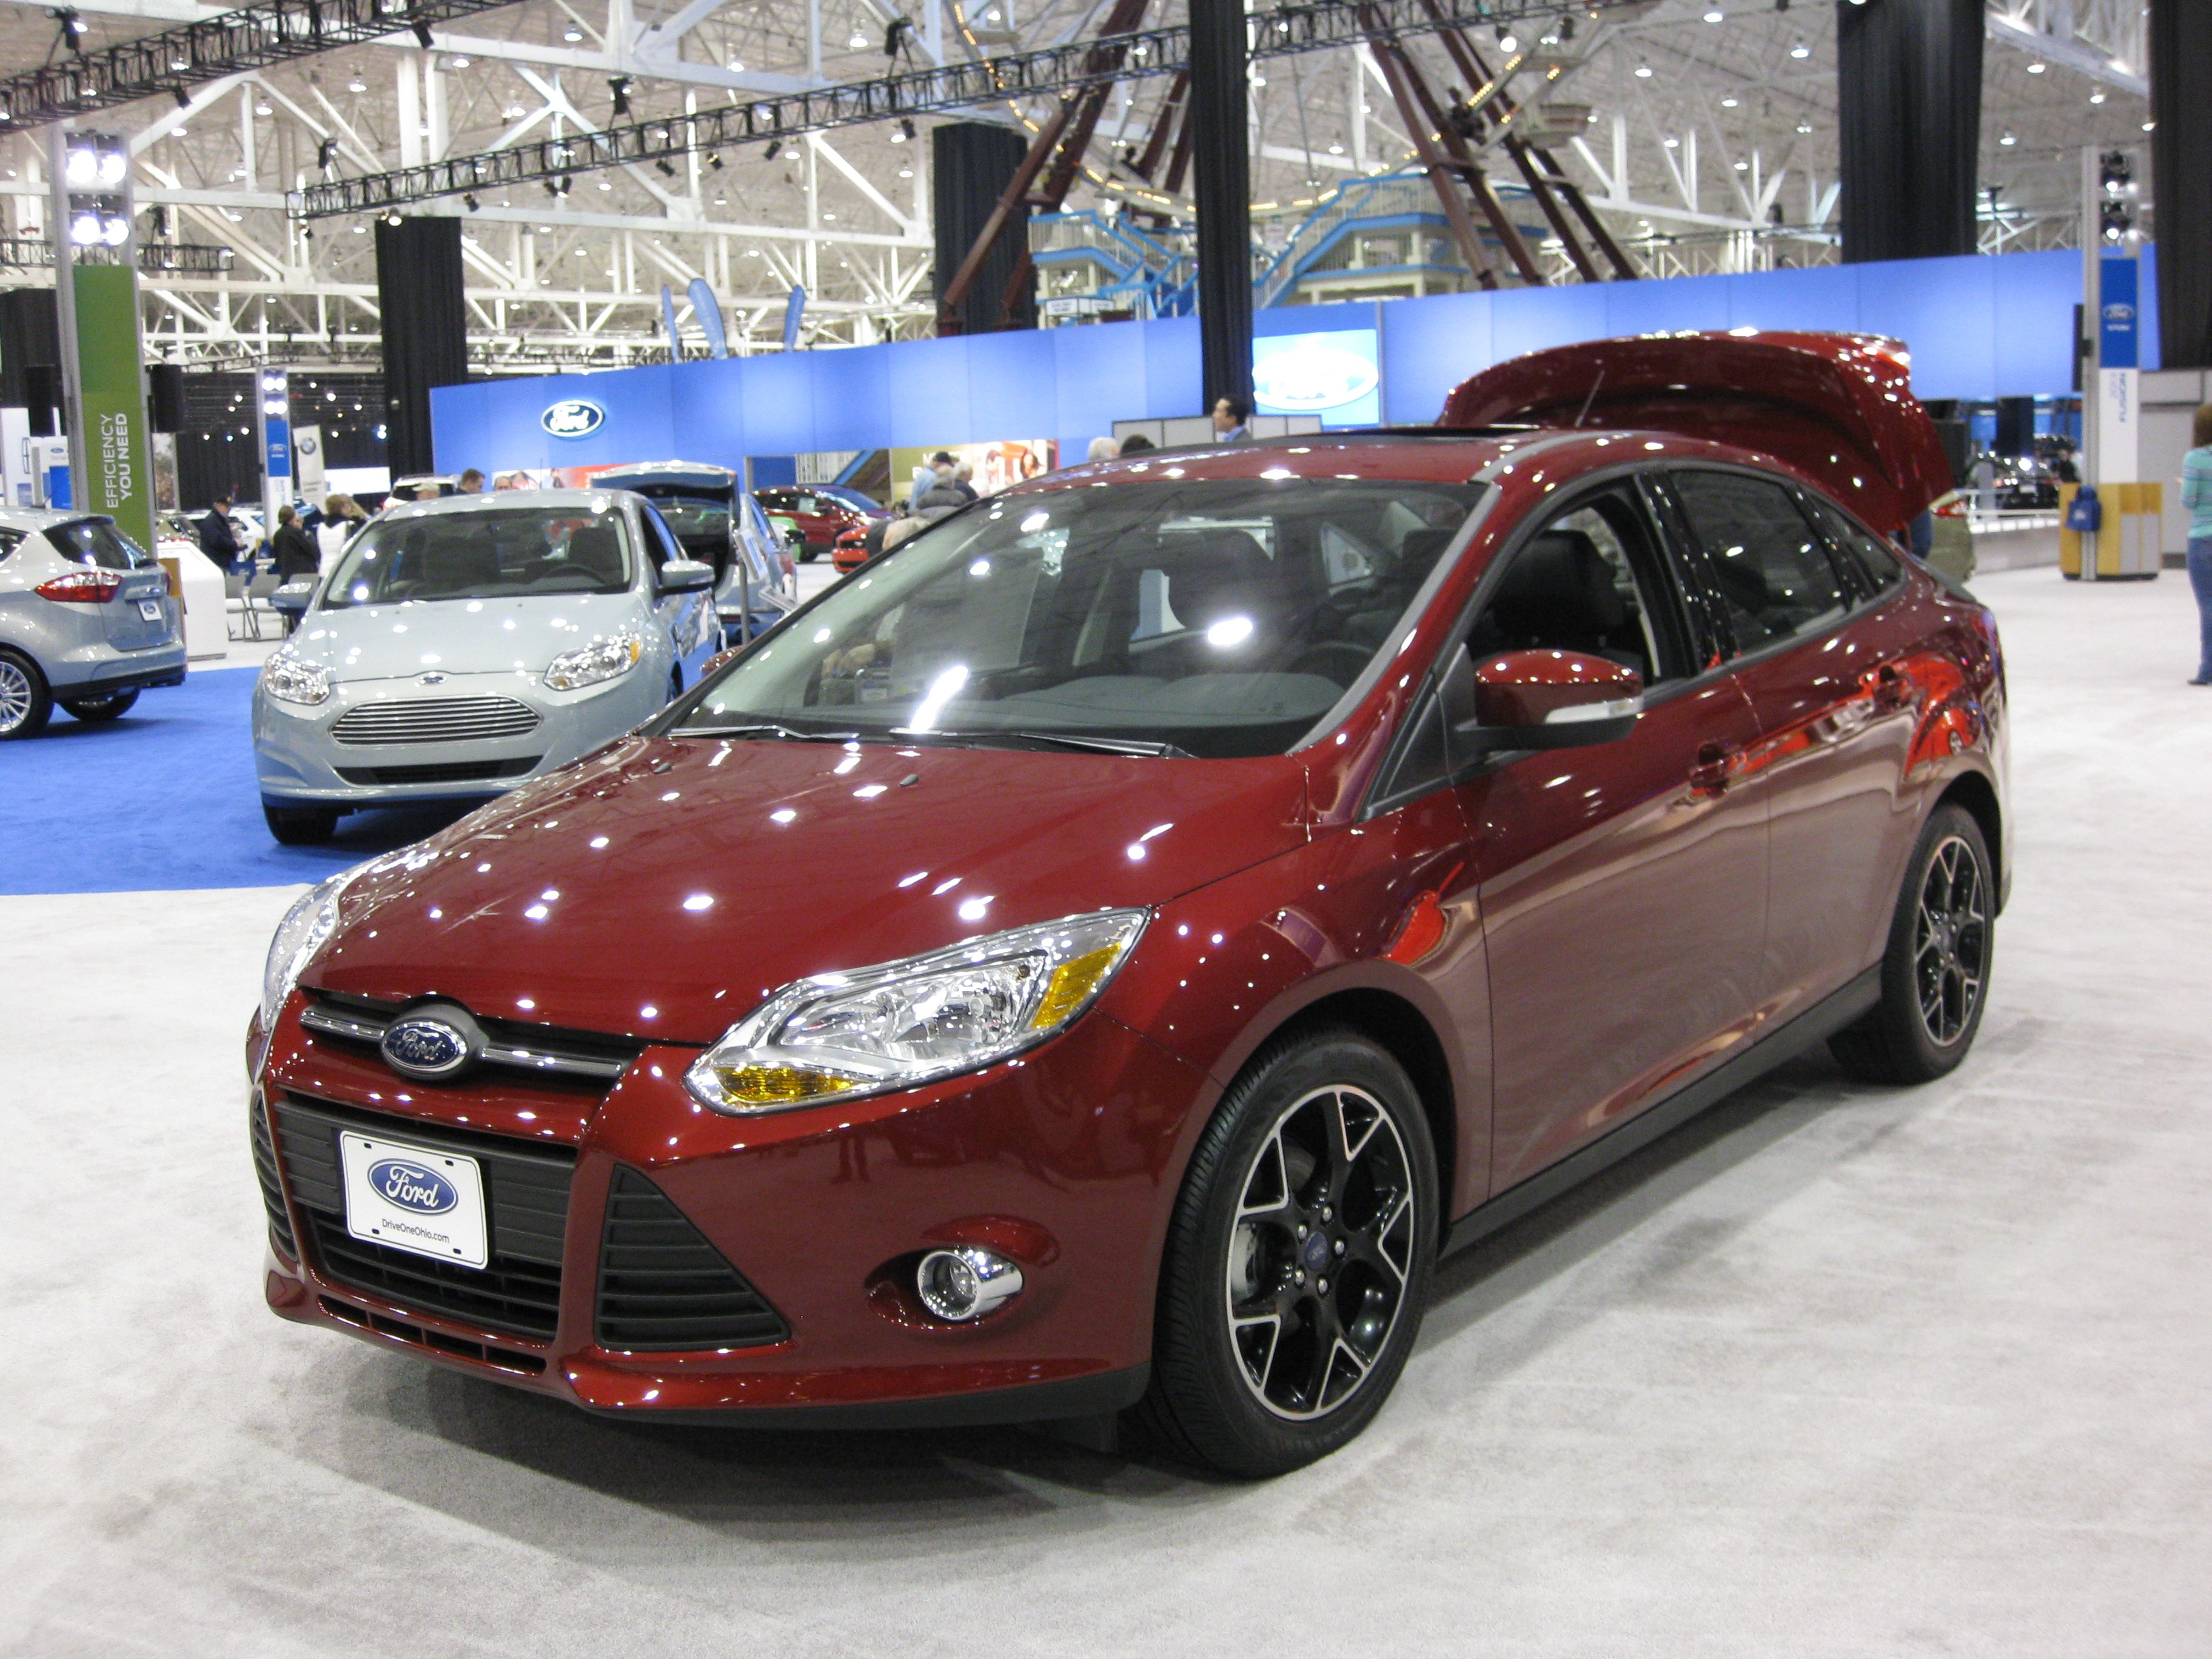 2013 Ford Focus Ruby Red Ford Focus Dealership Ford